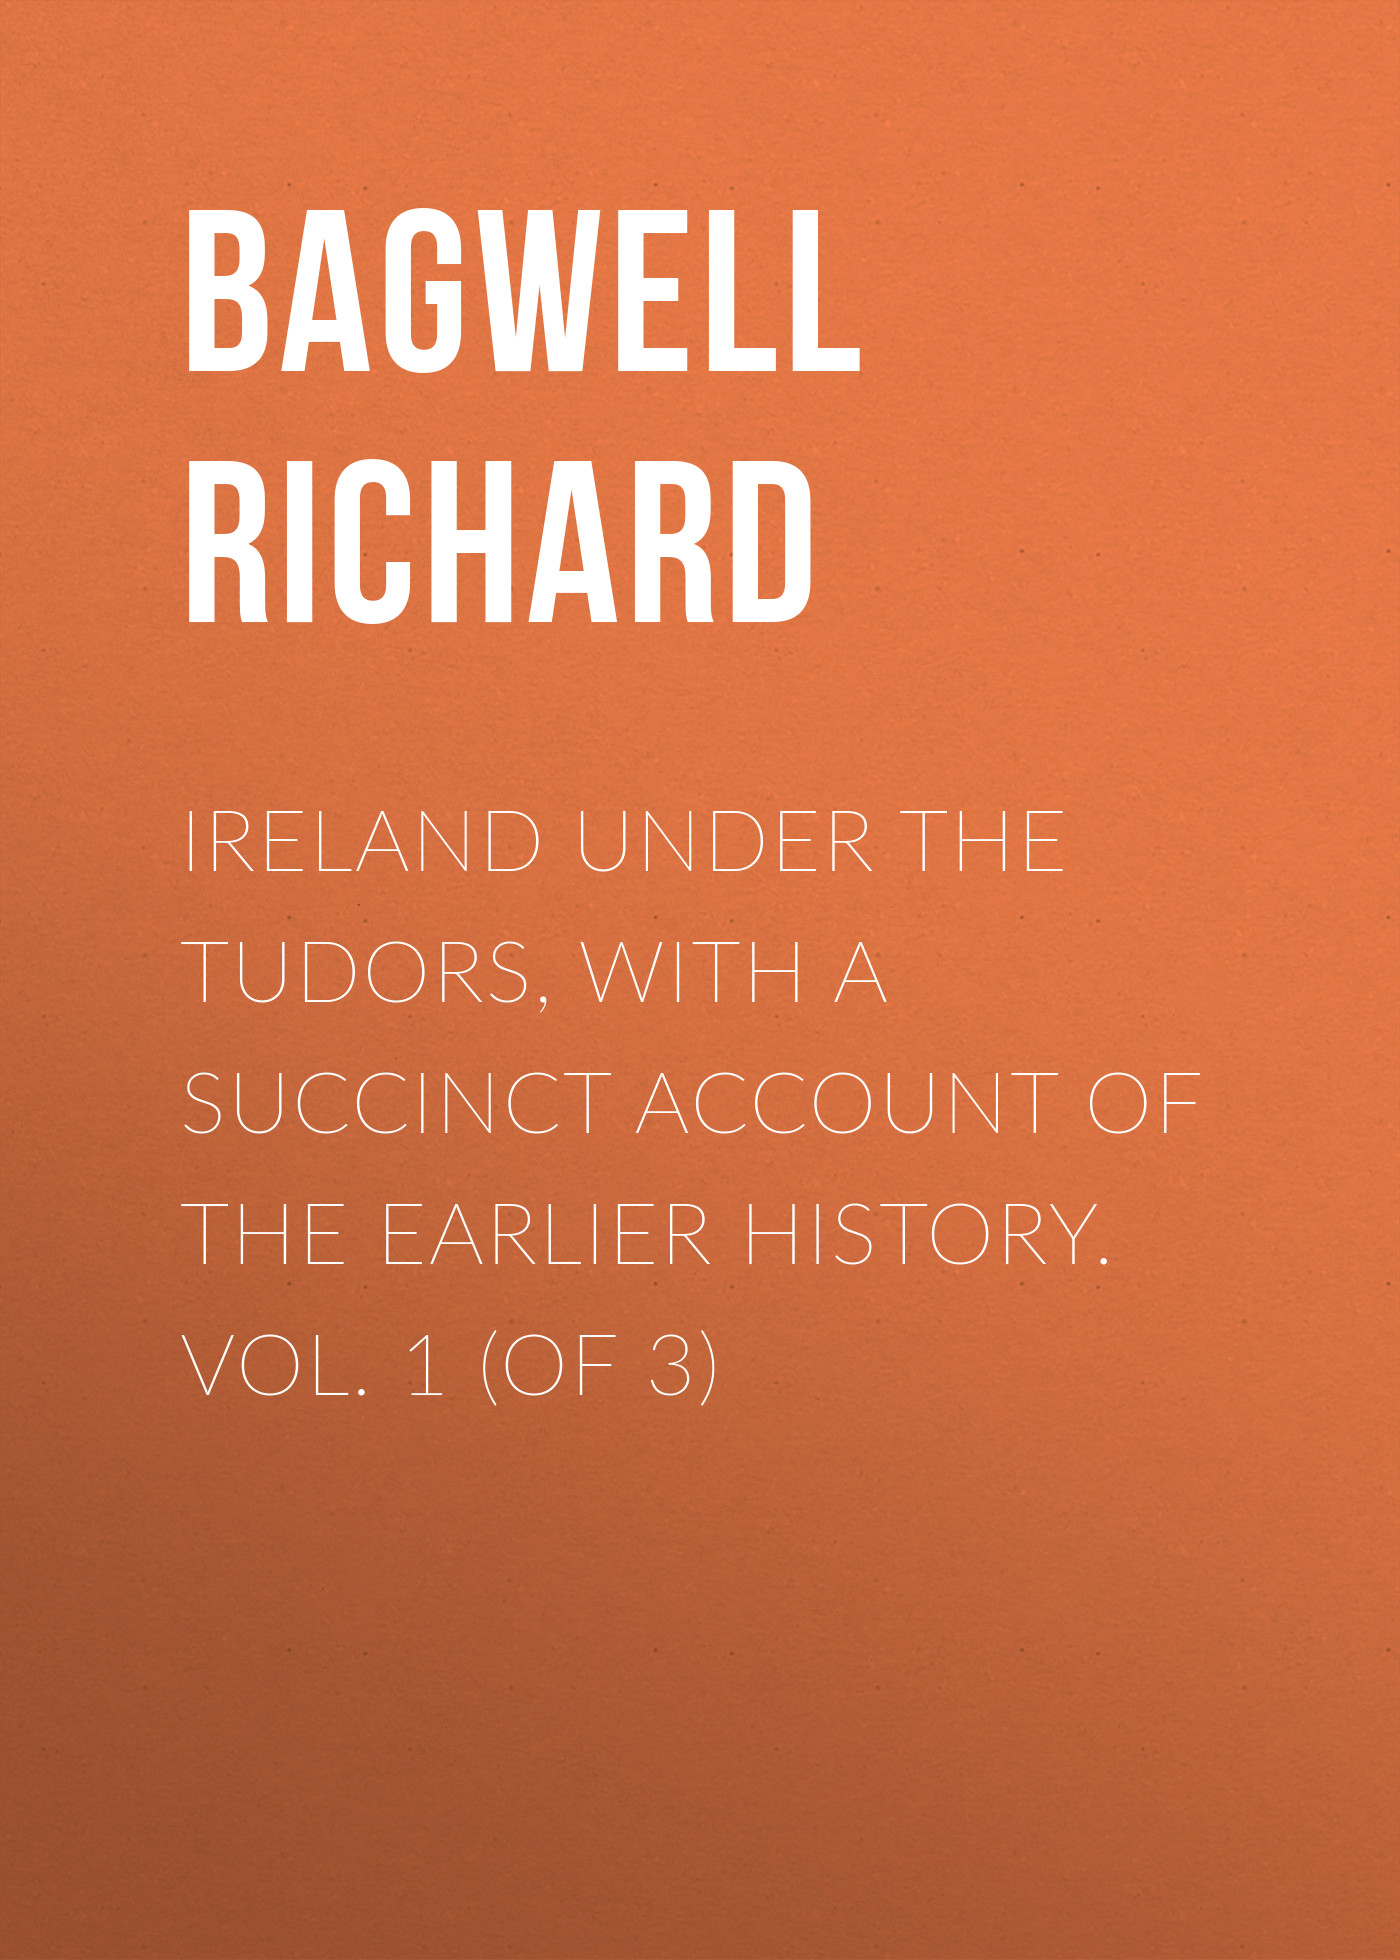 Bagwell Richard Ireland under the Tudors, with a Succinct Account of the Earlier History. Vol. 1 (of 3) richard sylla a history of interest rates